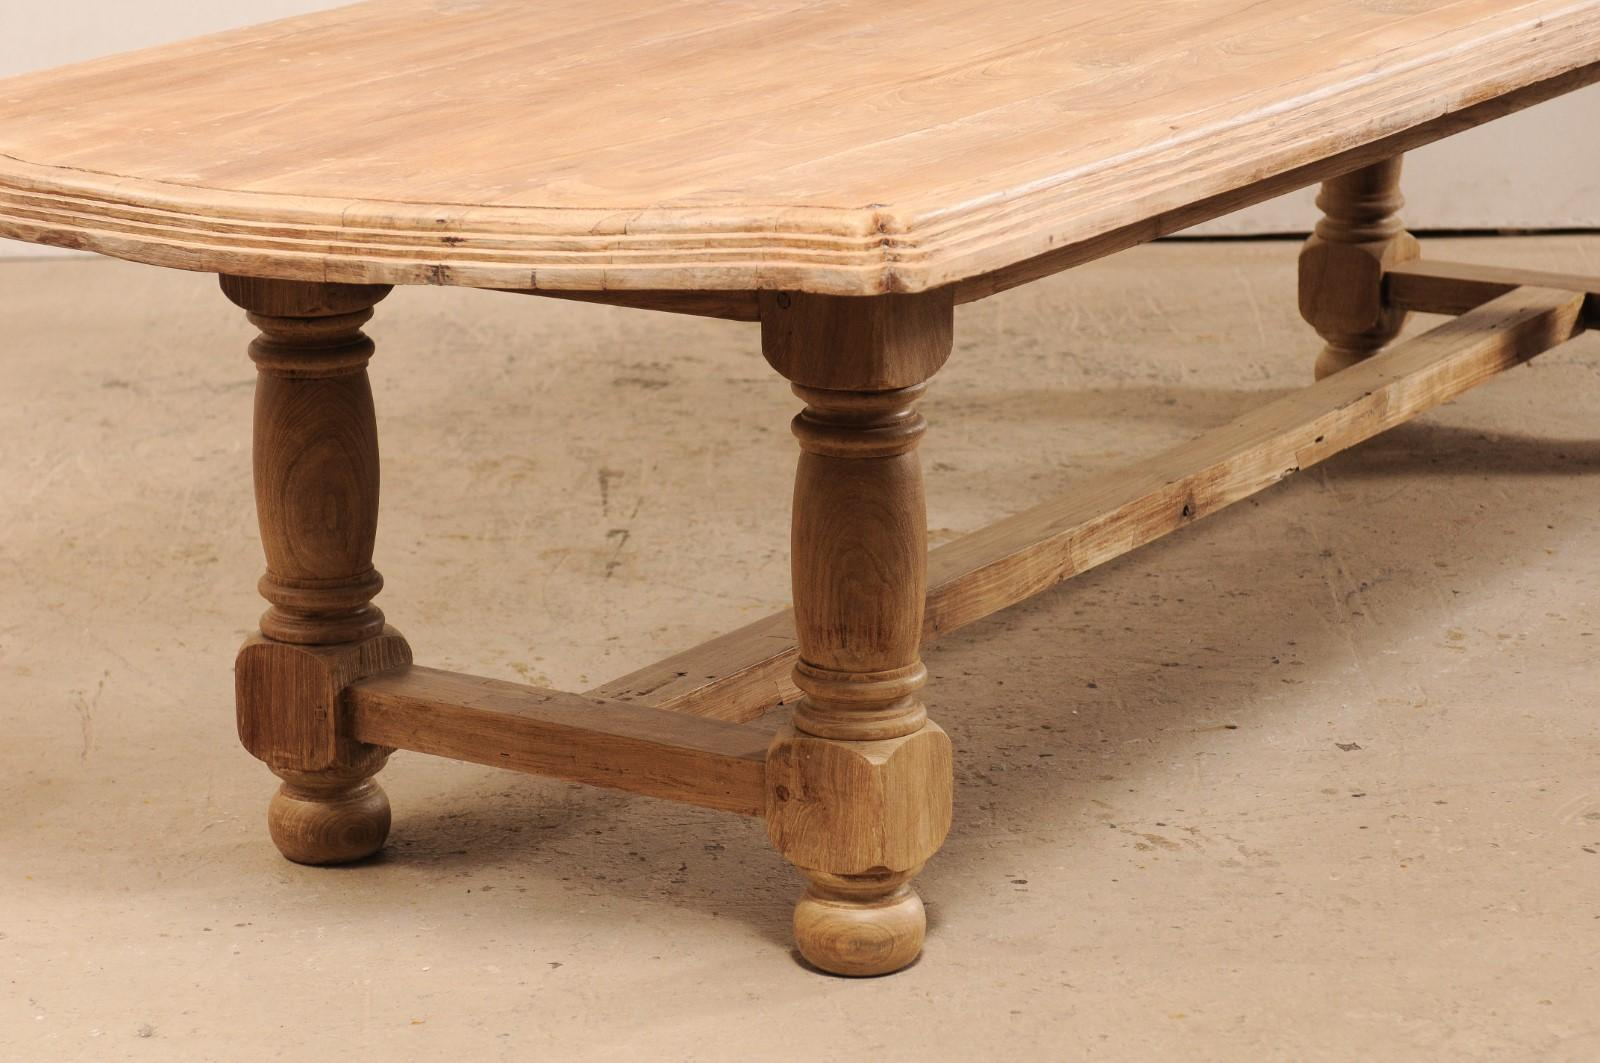 Enjoyable Large Sized Anglo Indian Light Teak Wood Dining Table Download Free Architecture Designs Grimeyleaguecom